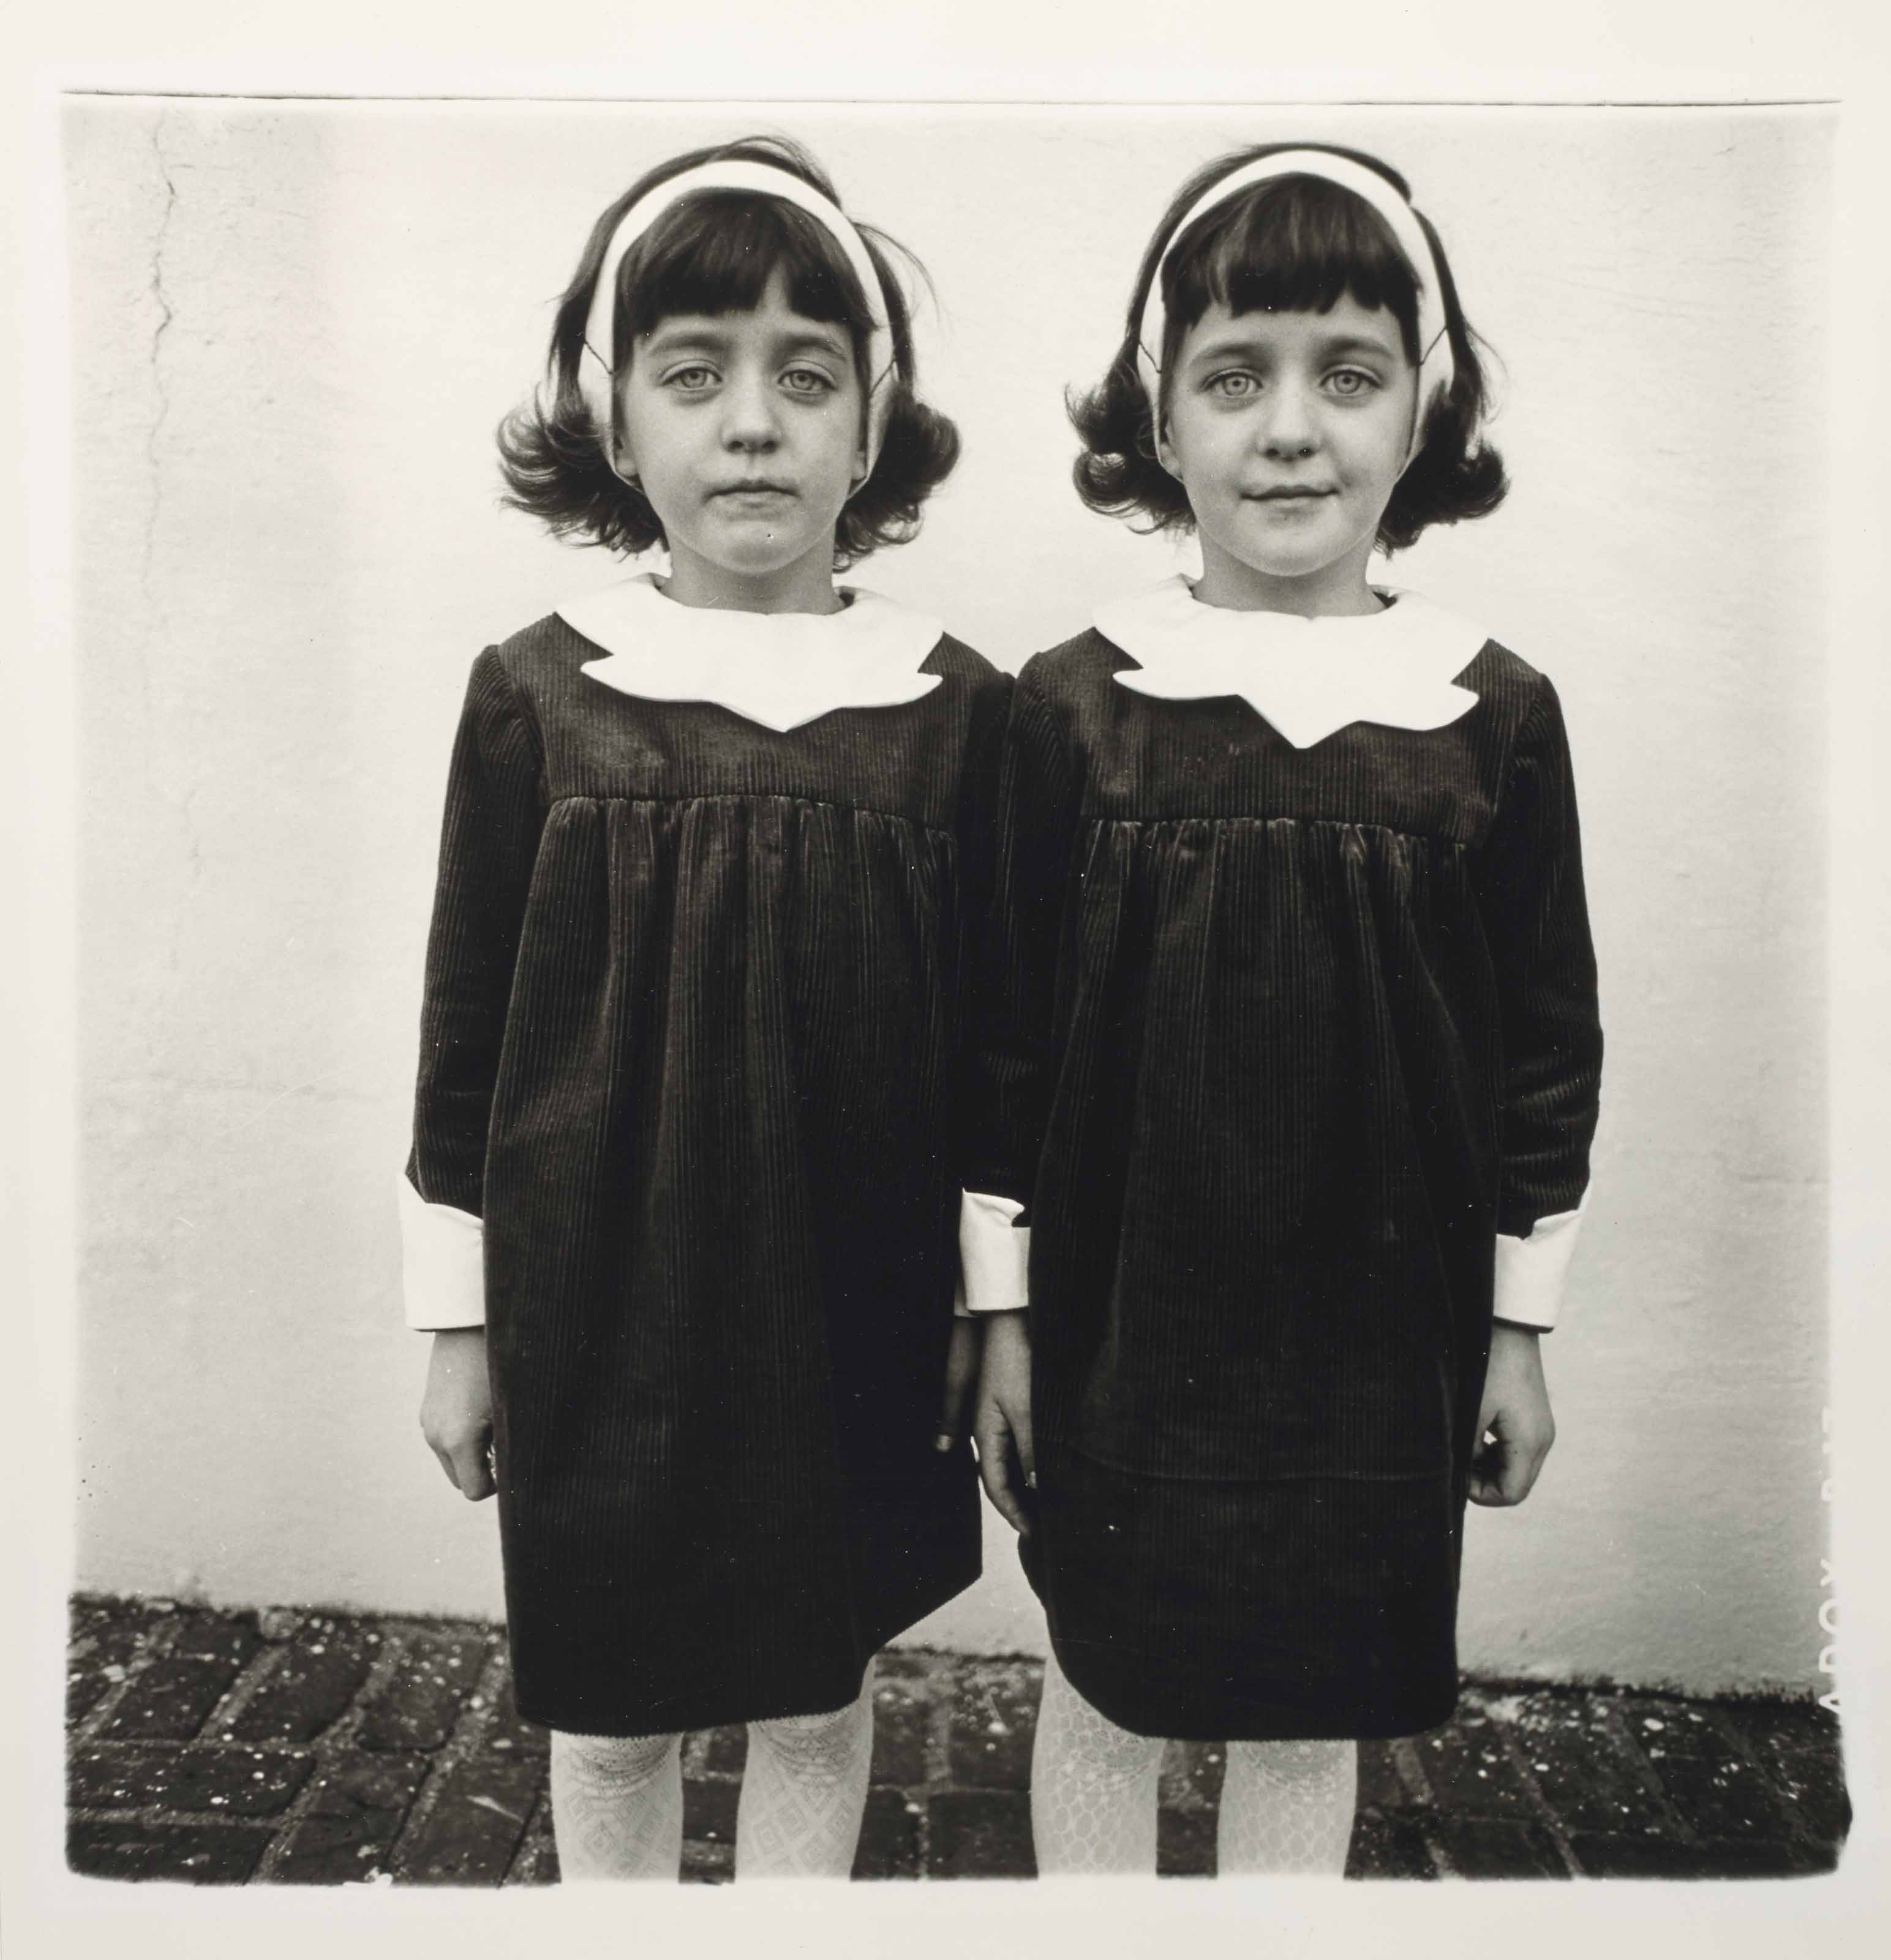 Identical twins, Roselle, N.J, 1966